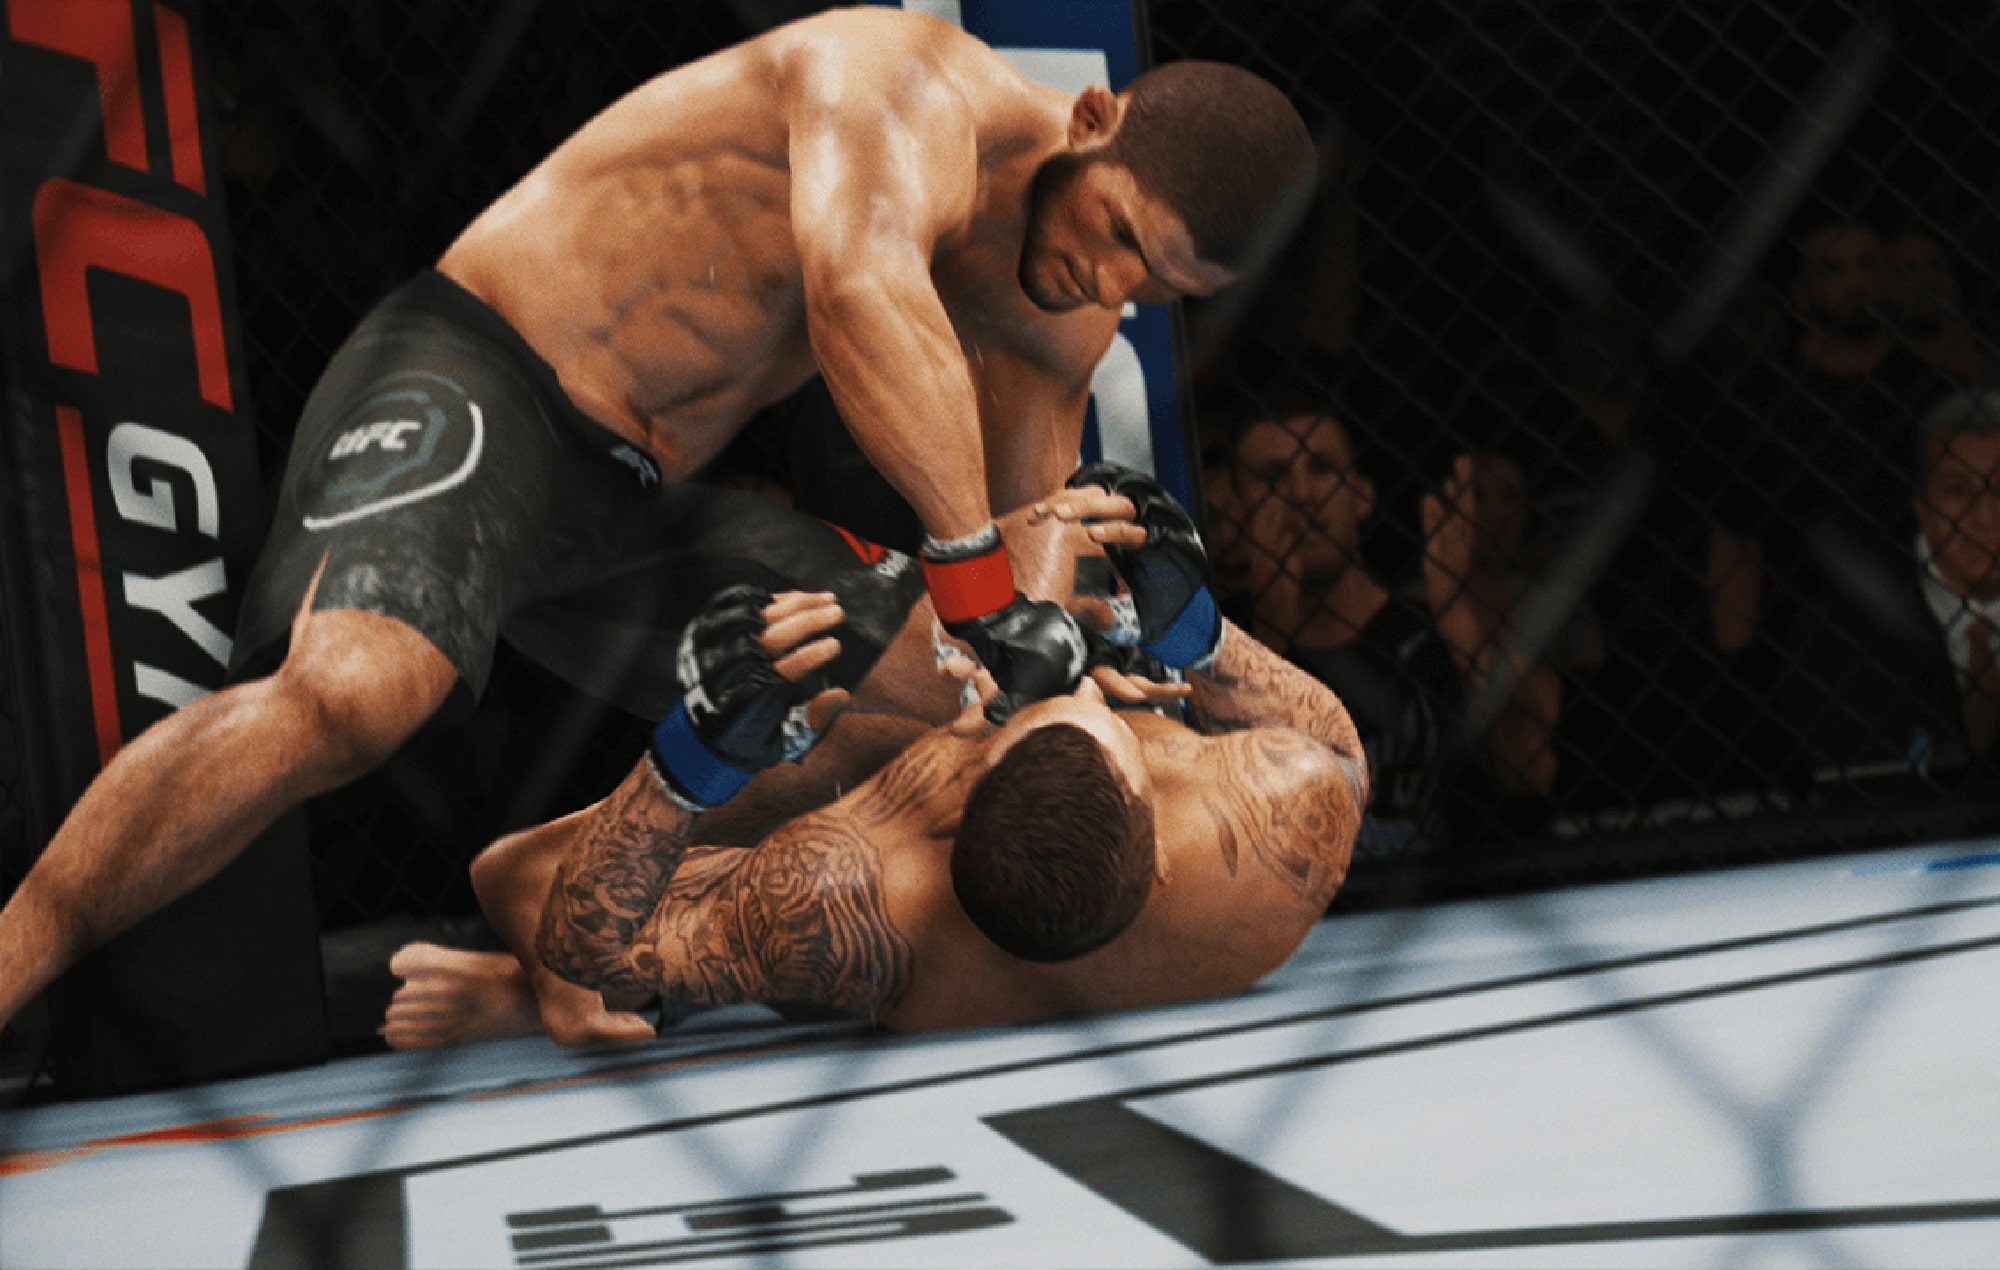 Ea Sports Ufc 4 Soundtrack To Feature Eminem J Cole And More